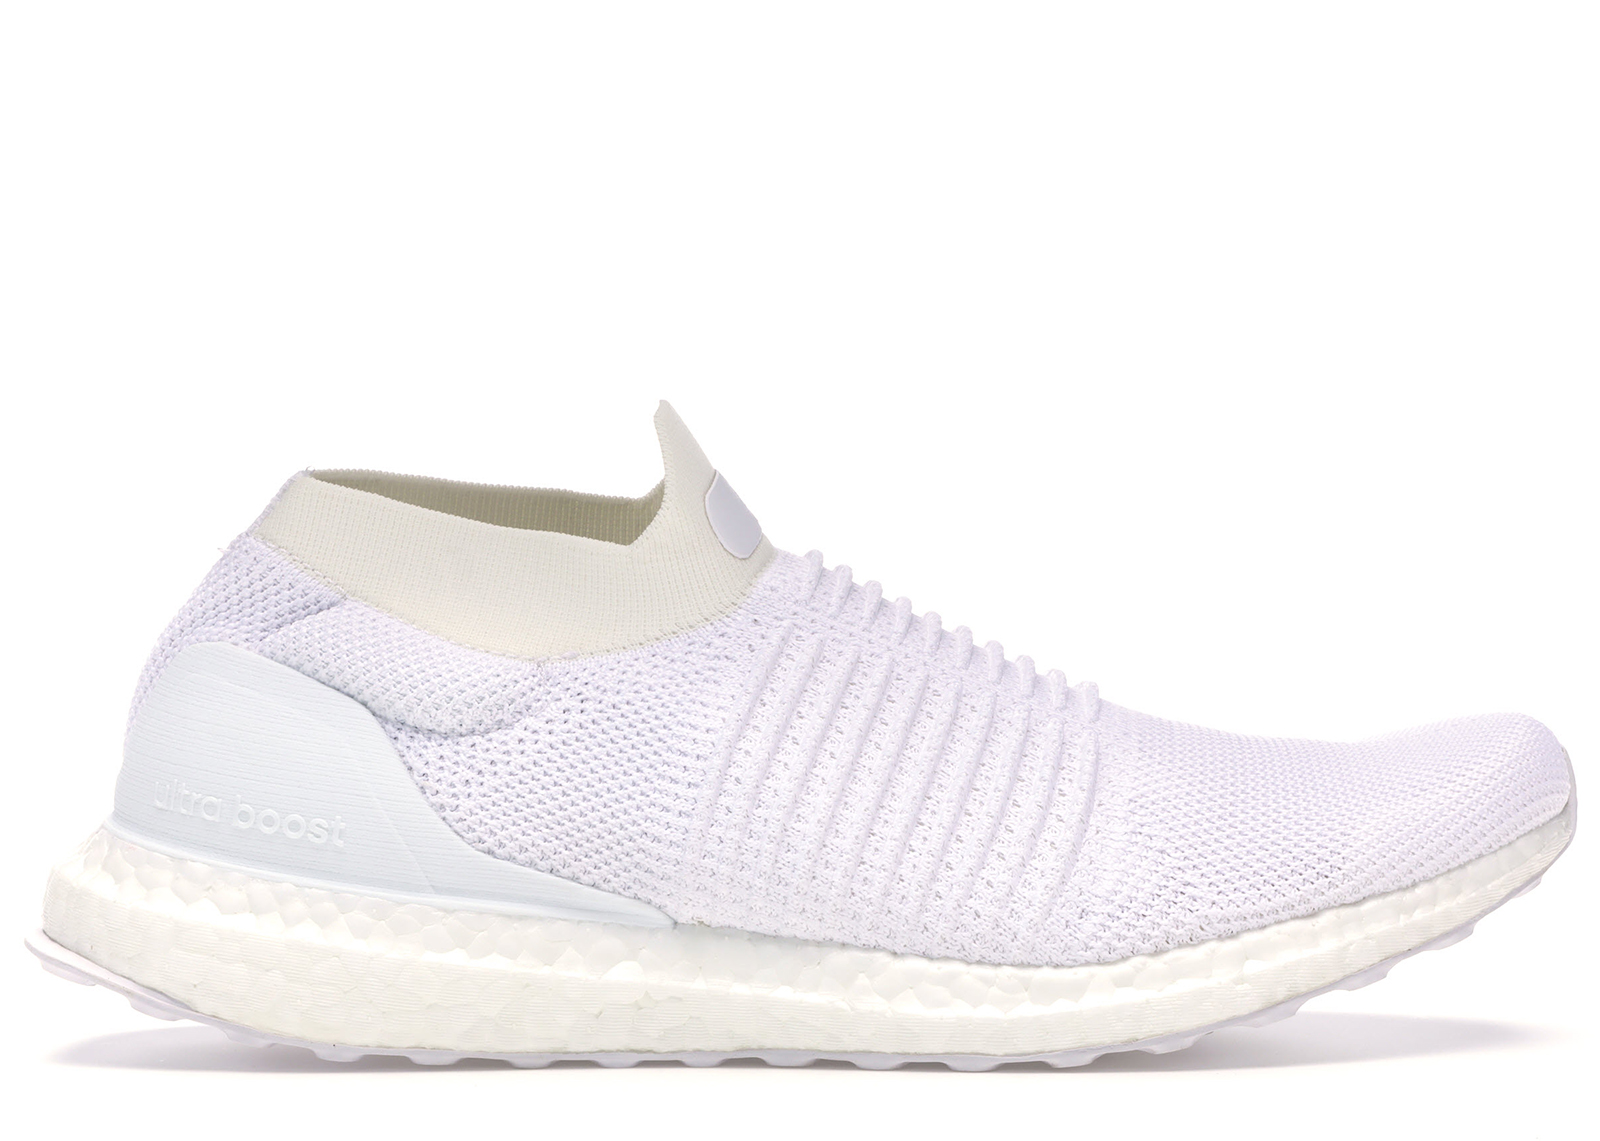 Adidas Ultra Boost Laceless Mid